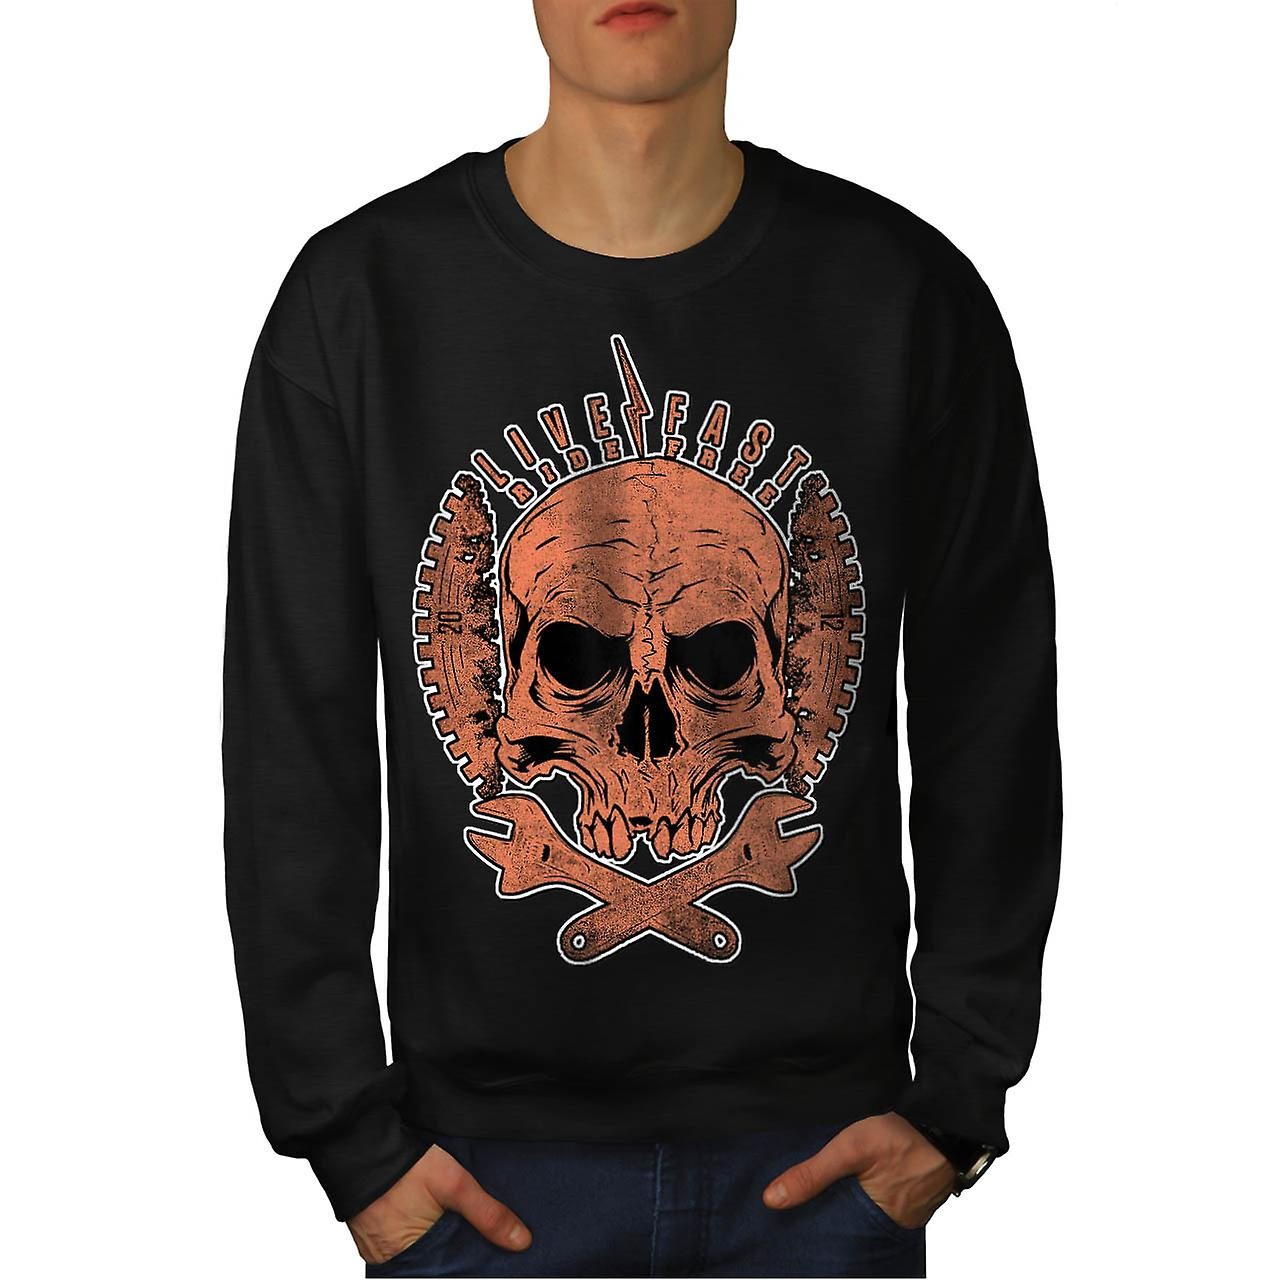 Live Fast Ride Free Biker Skull Men Black Sweatshirt | Wellcoda